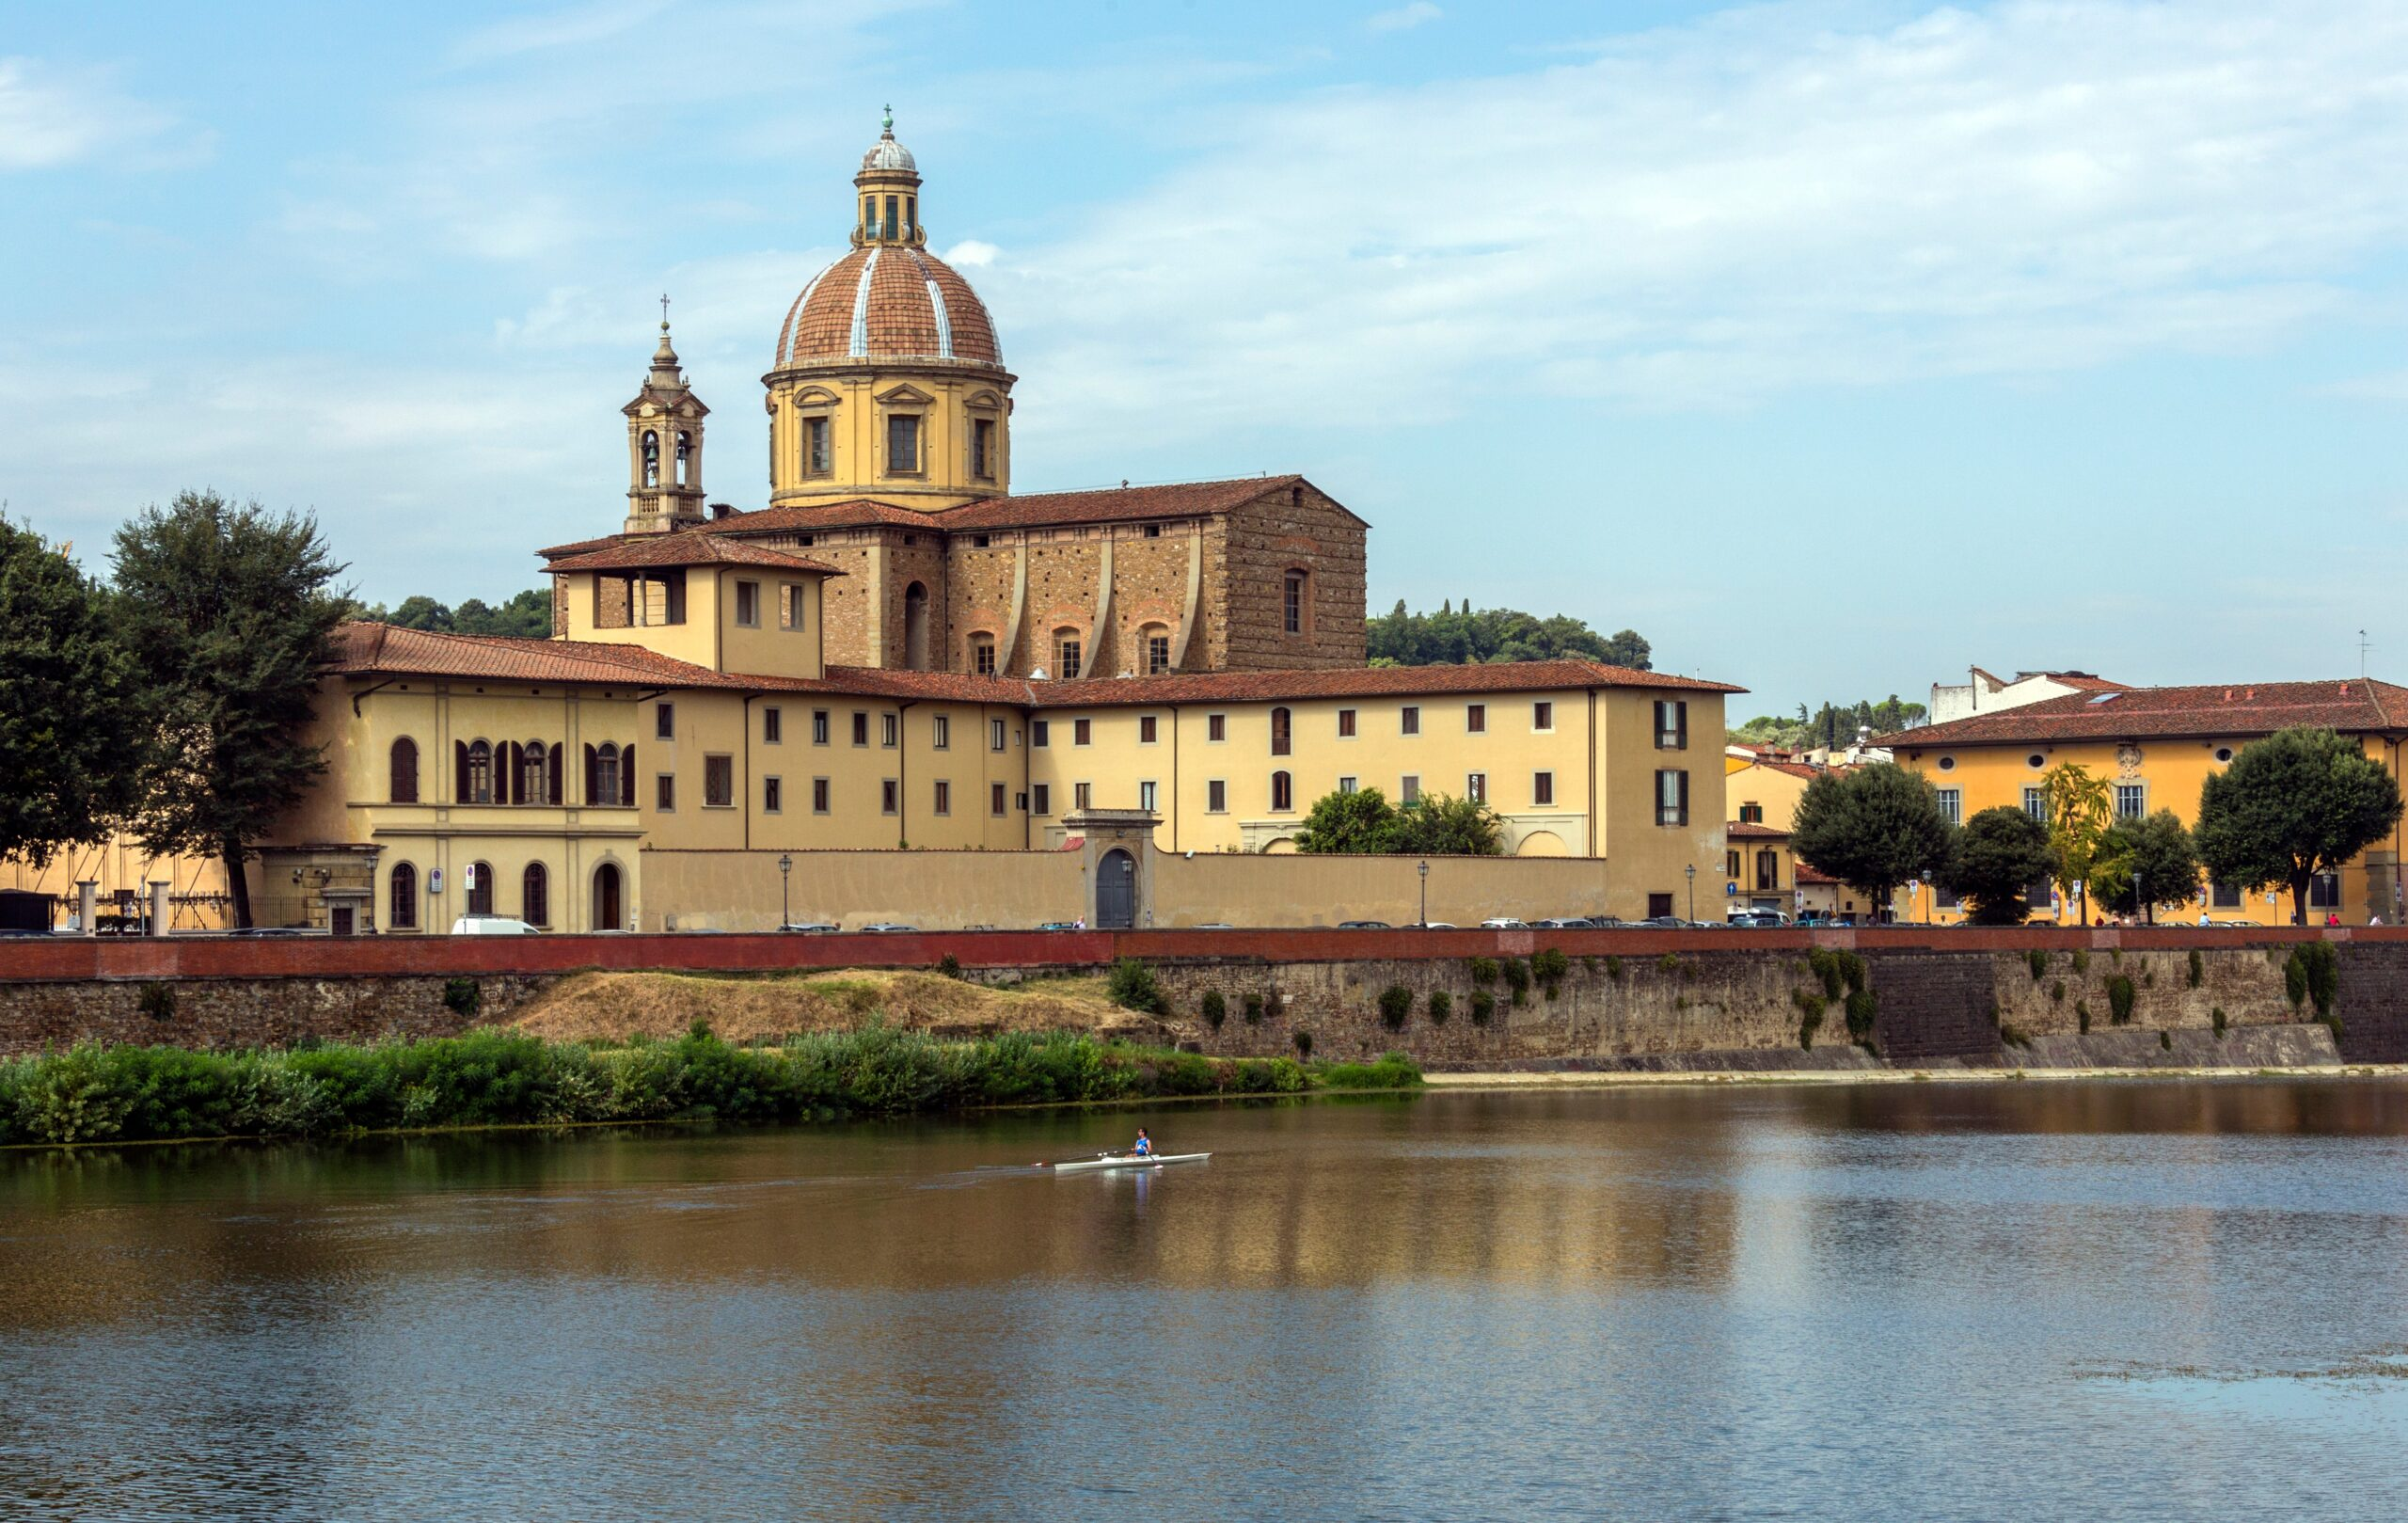 Photo featuring the Arno River with Santo Spirito Church in the background in Florence Italy.